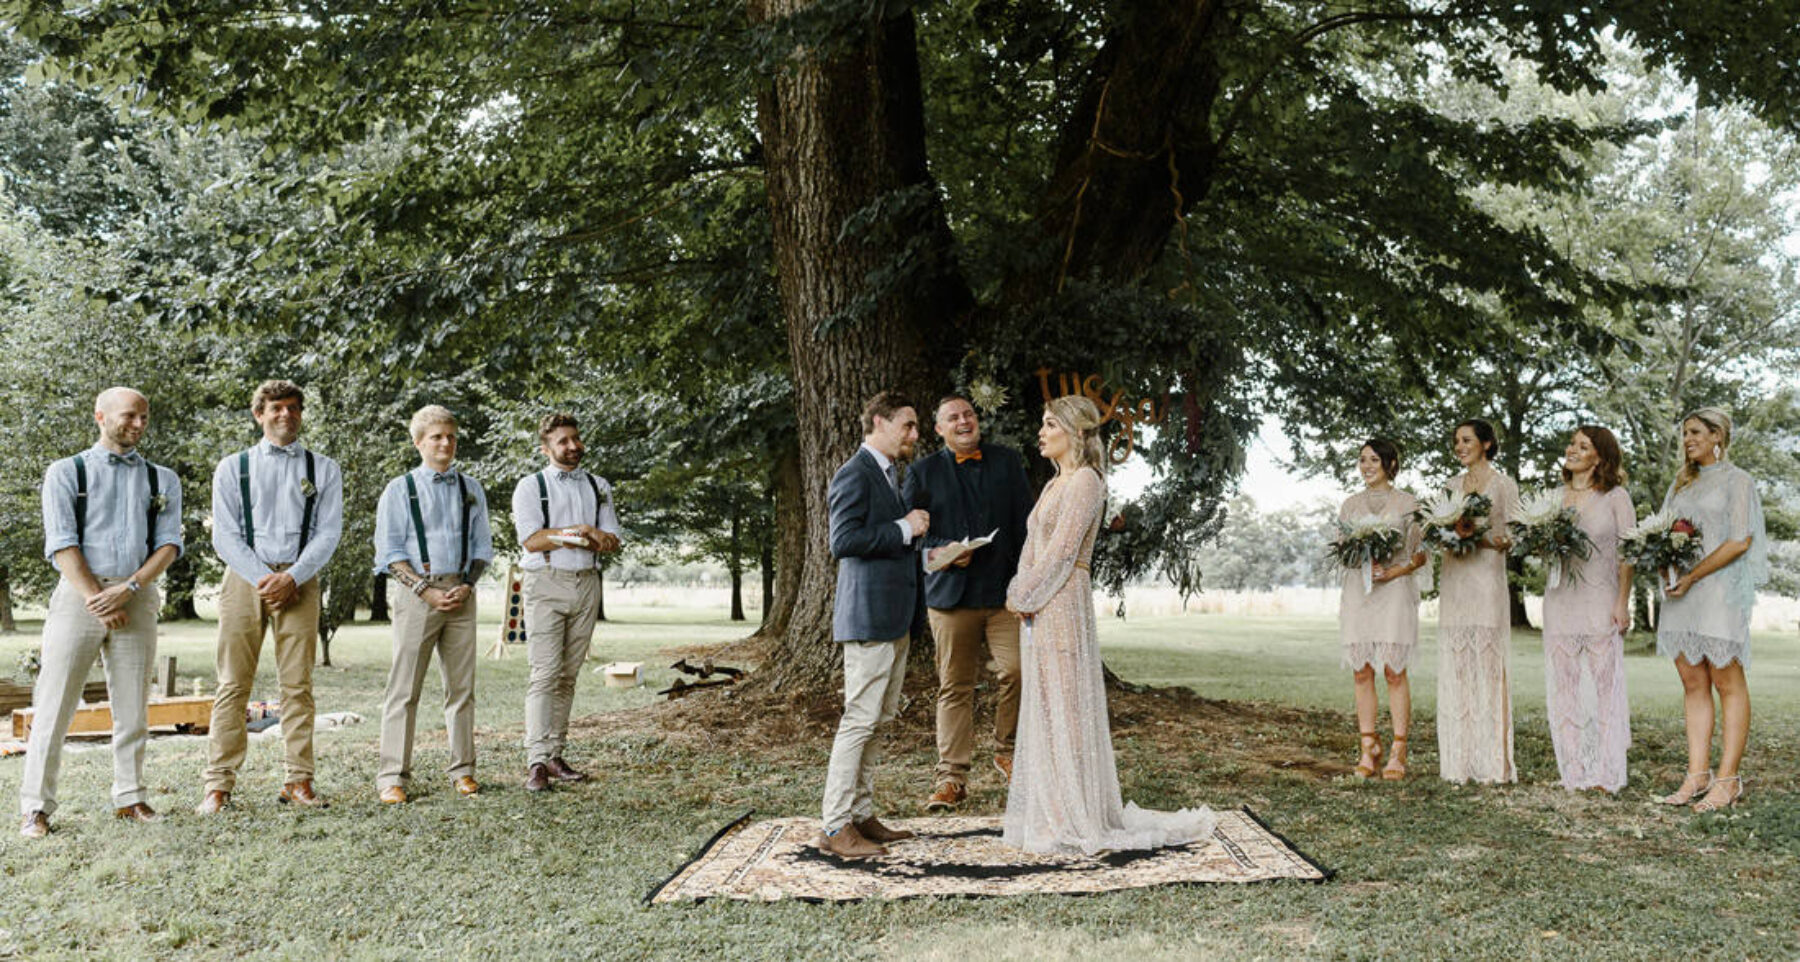 Outback festival wedding in Bright, Victoria - Photography by Oli Sansom